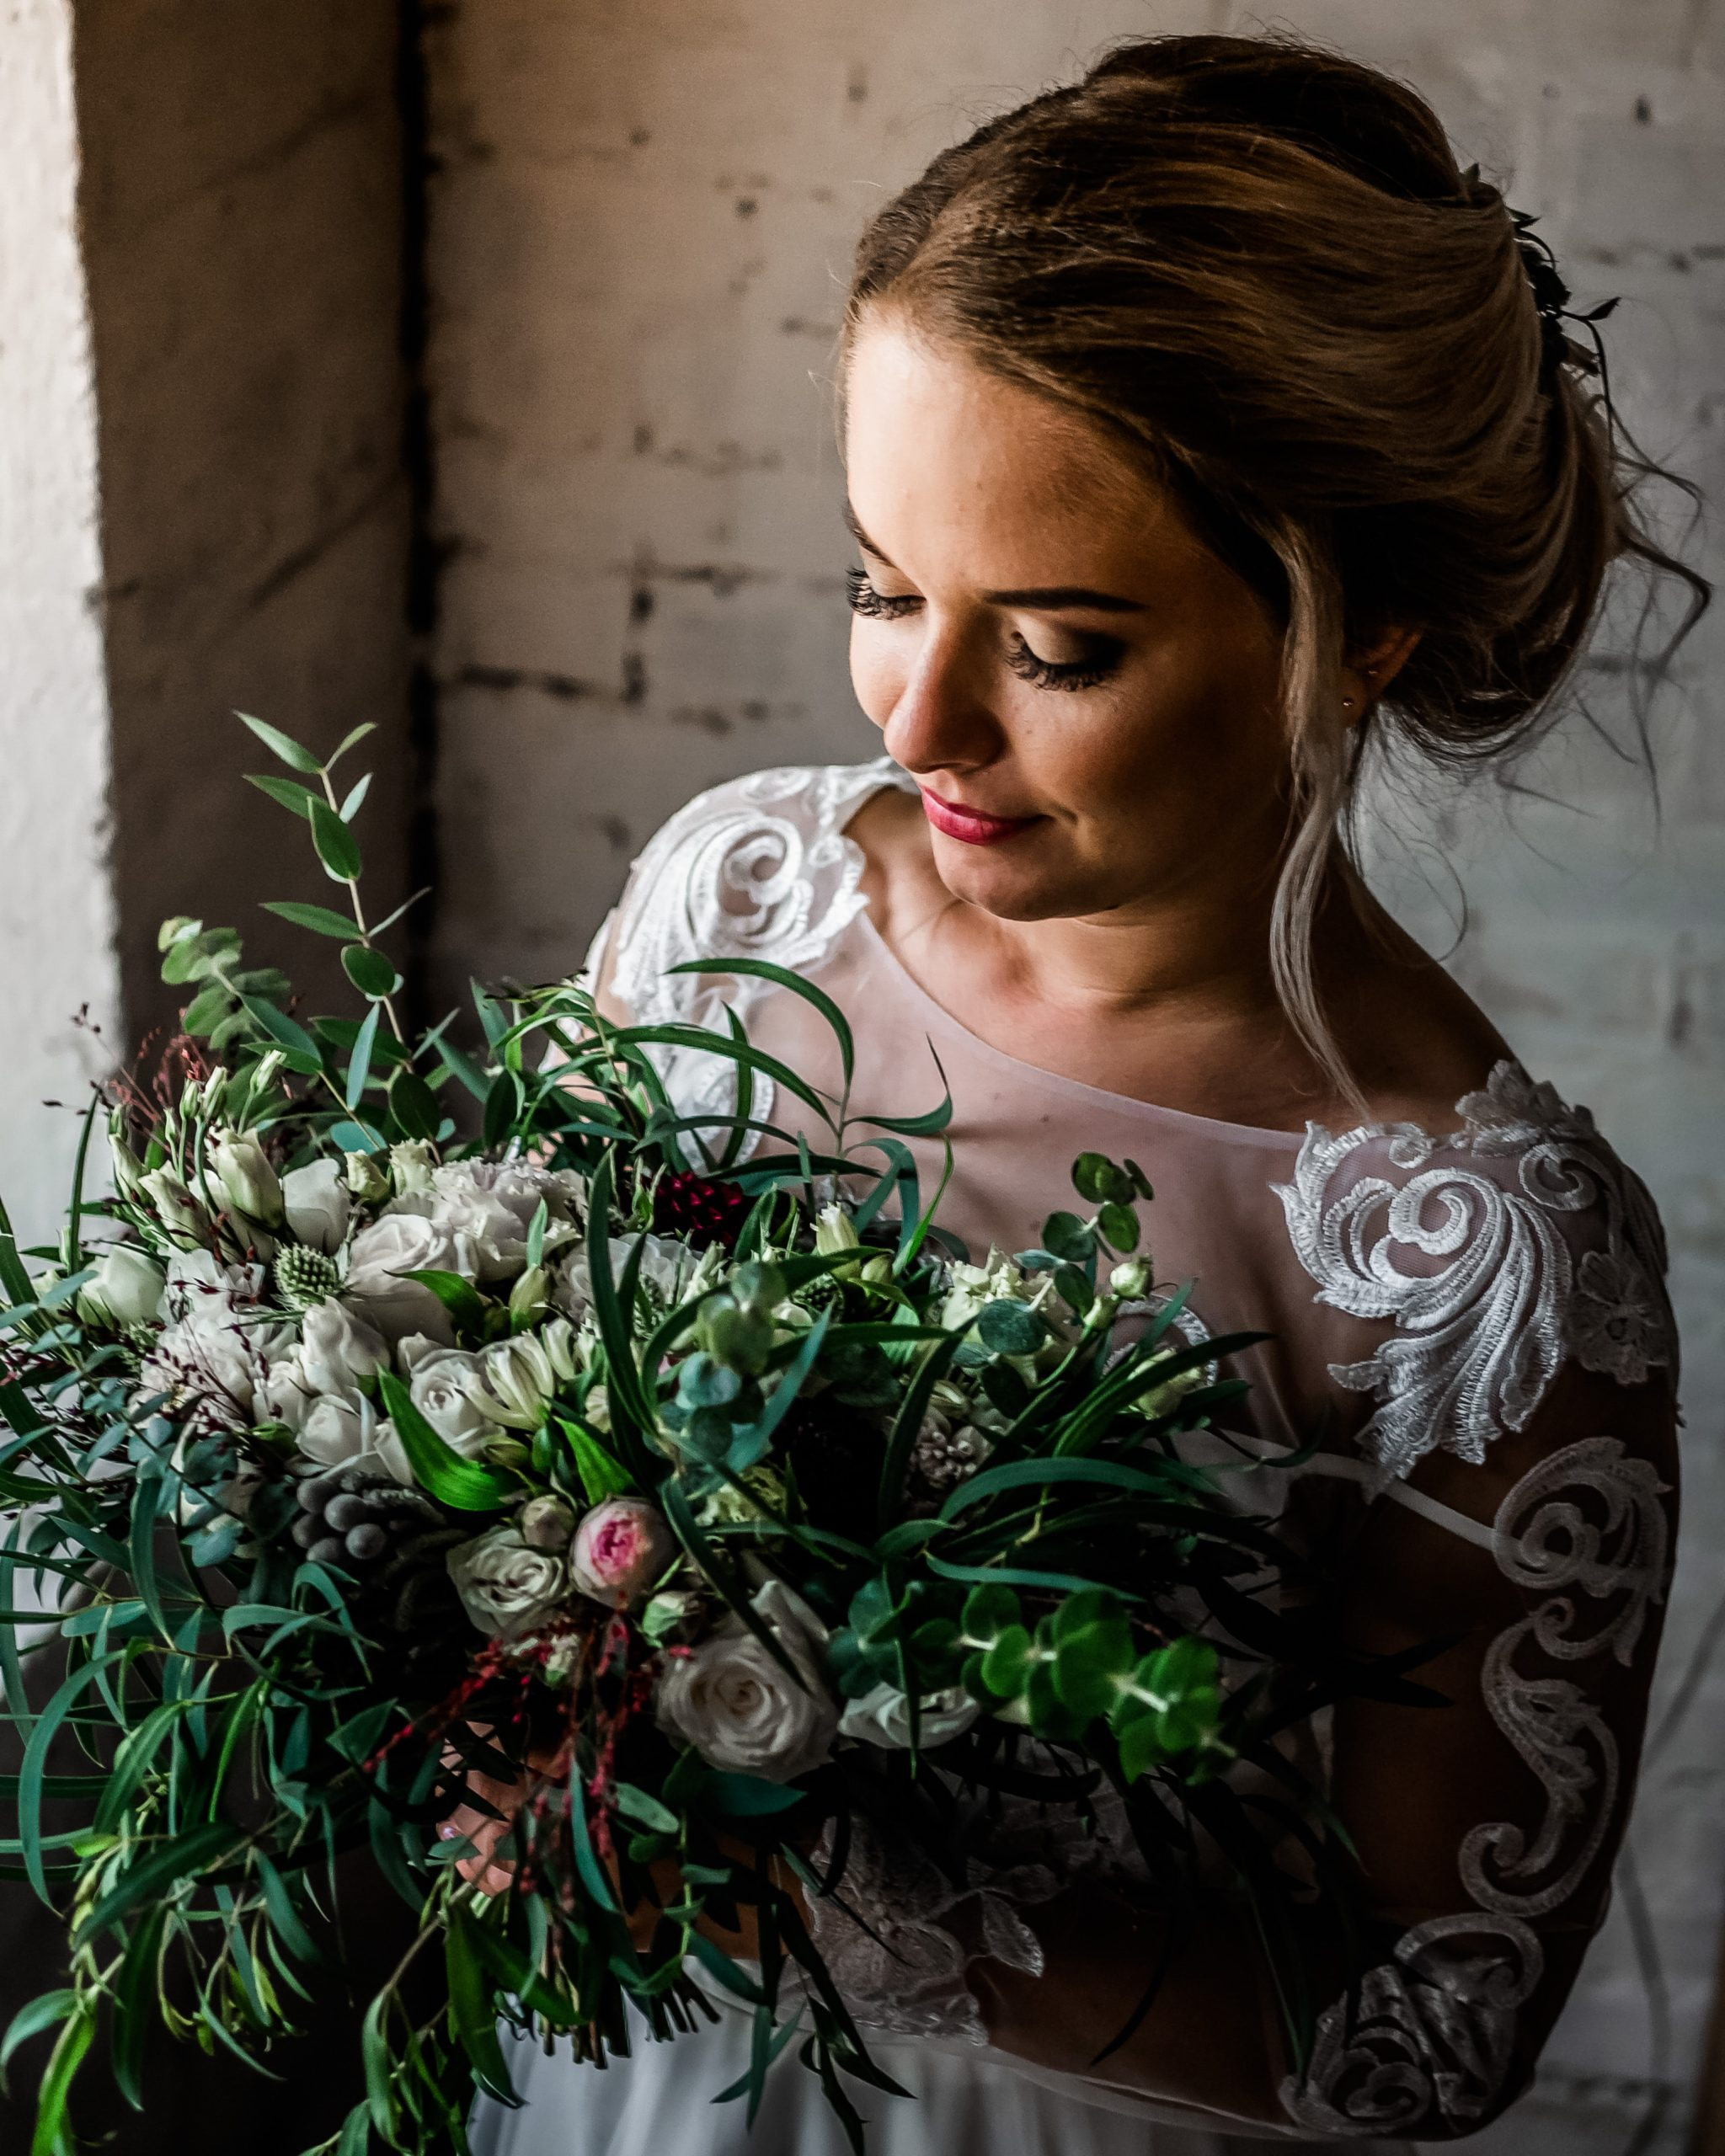 Bride standing at a window admiring her bouquet